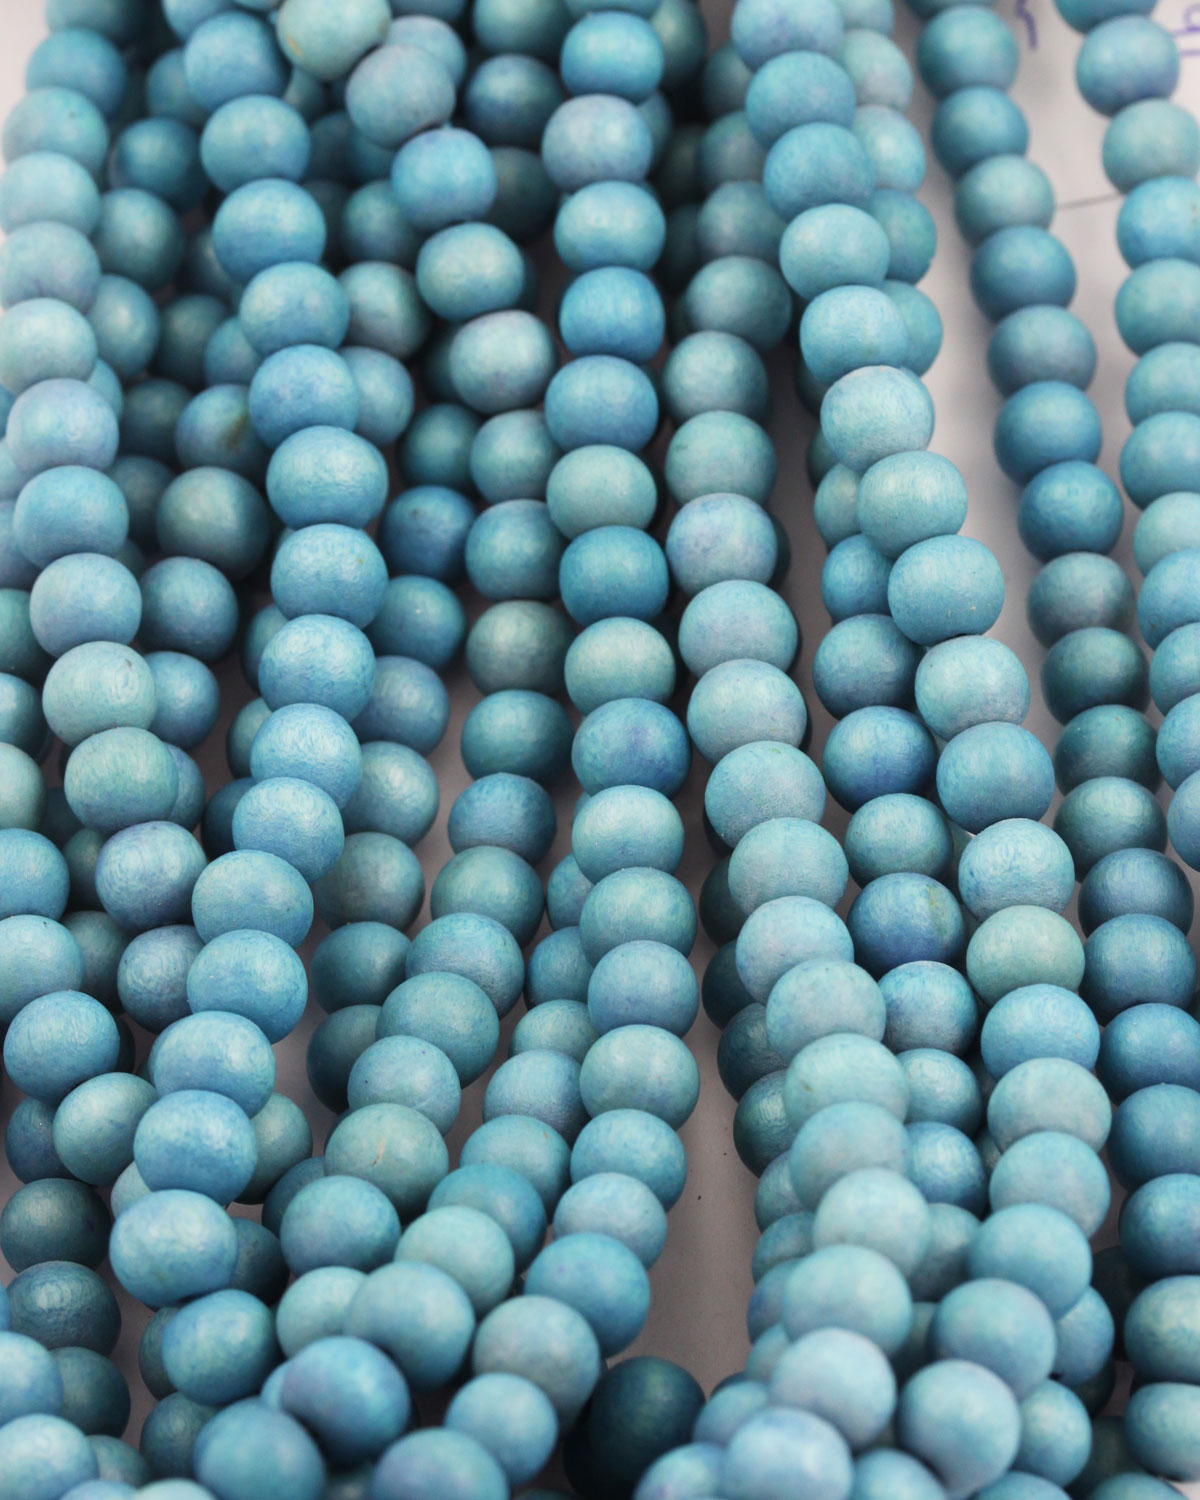 170 Turquoise Blue with Speckles 10mm Round Acrylic Beads